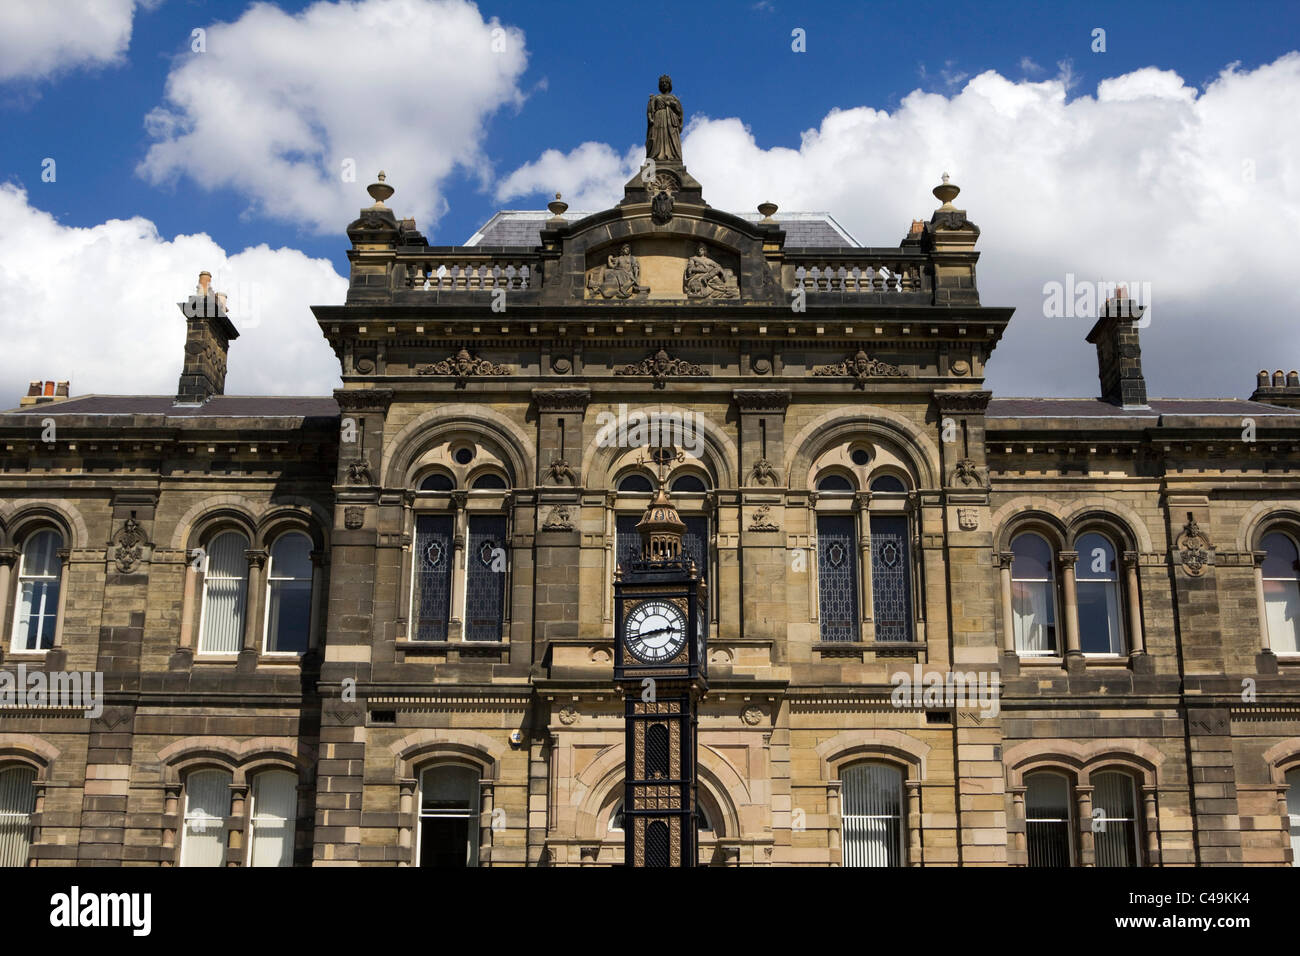 gateshead council offices tyne and wear england - Stock Image